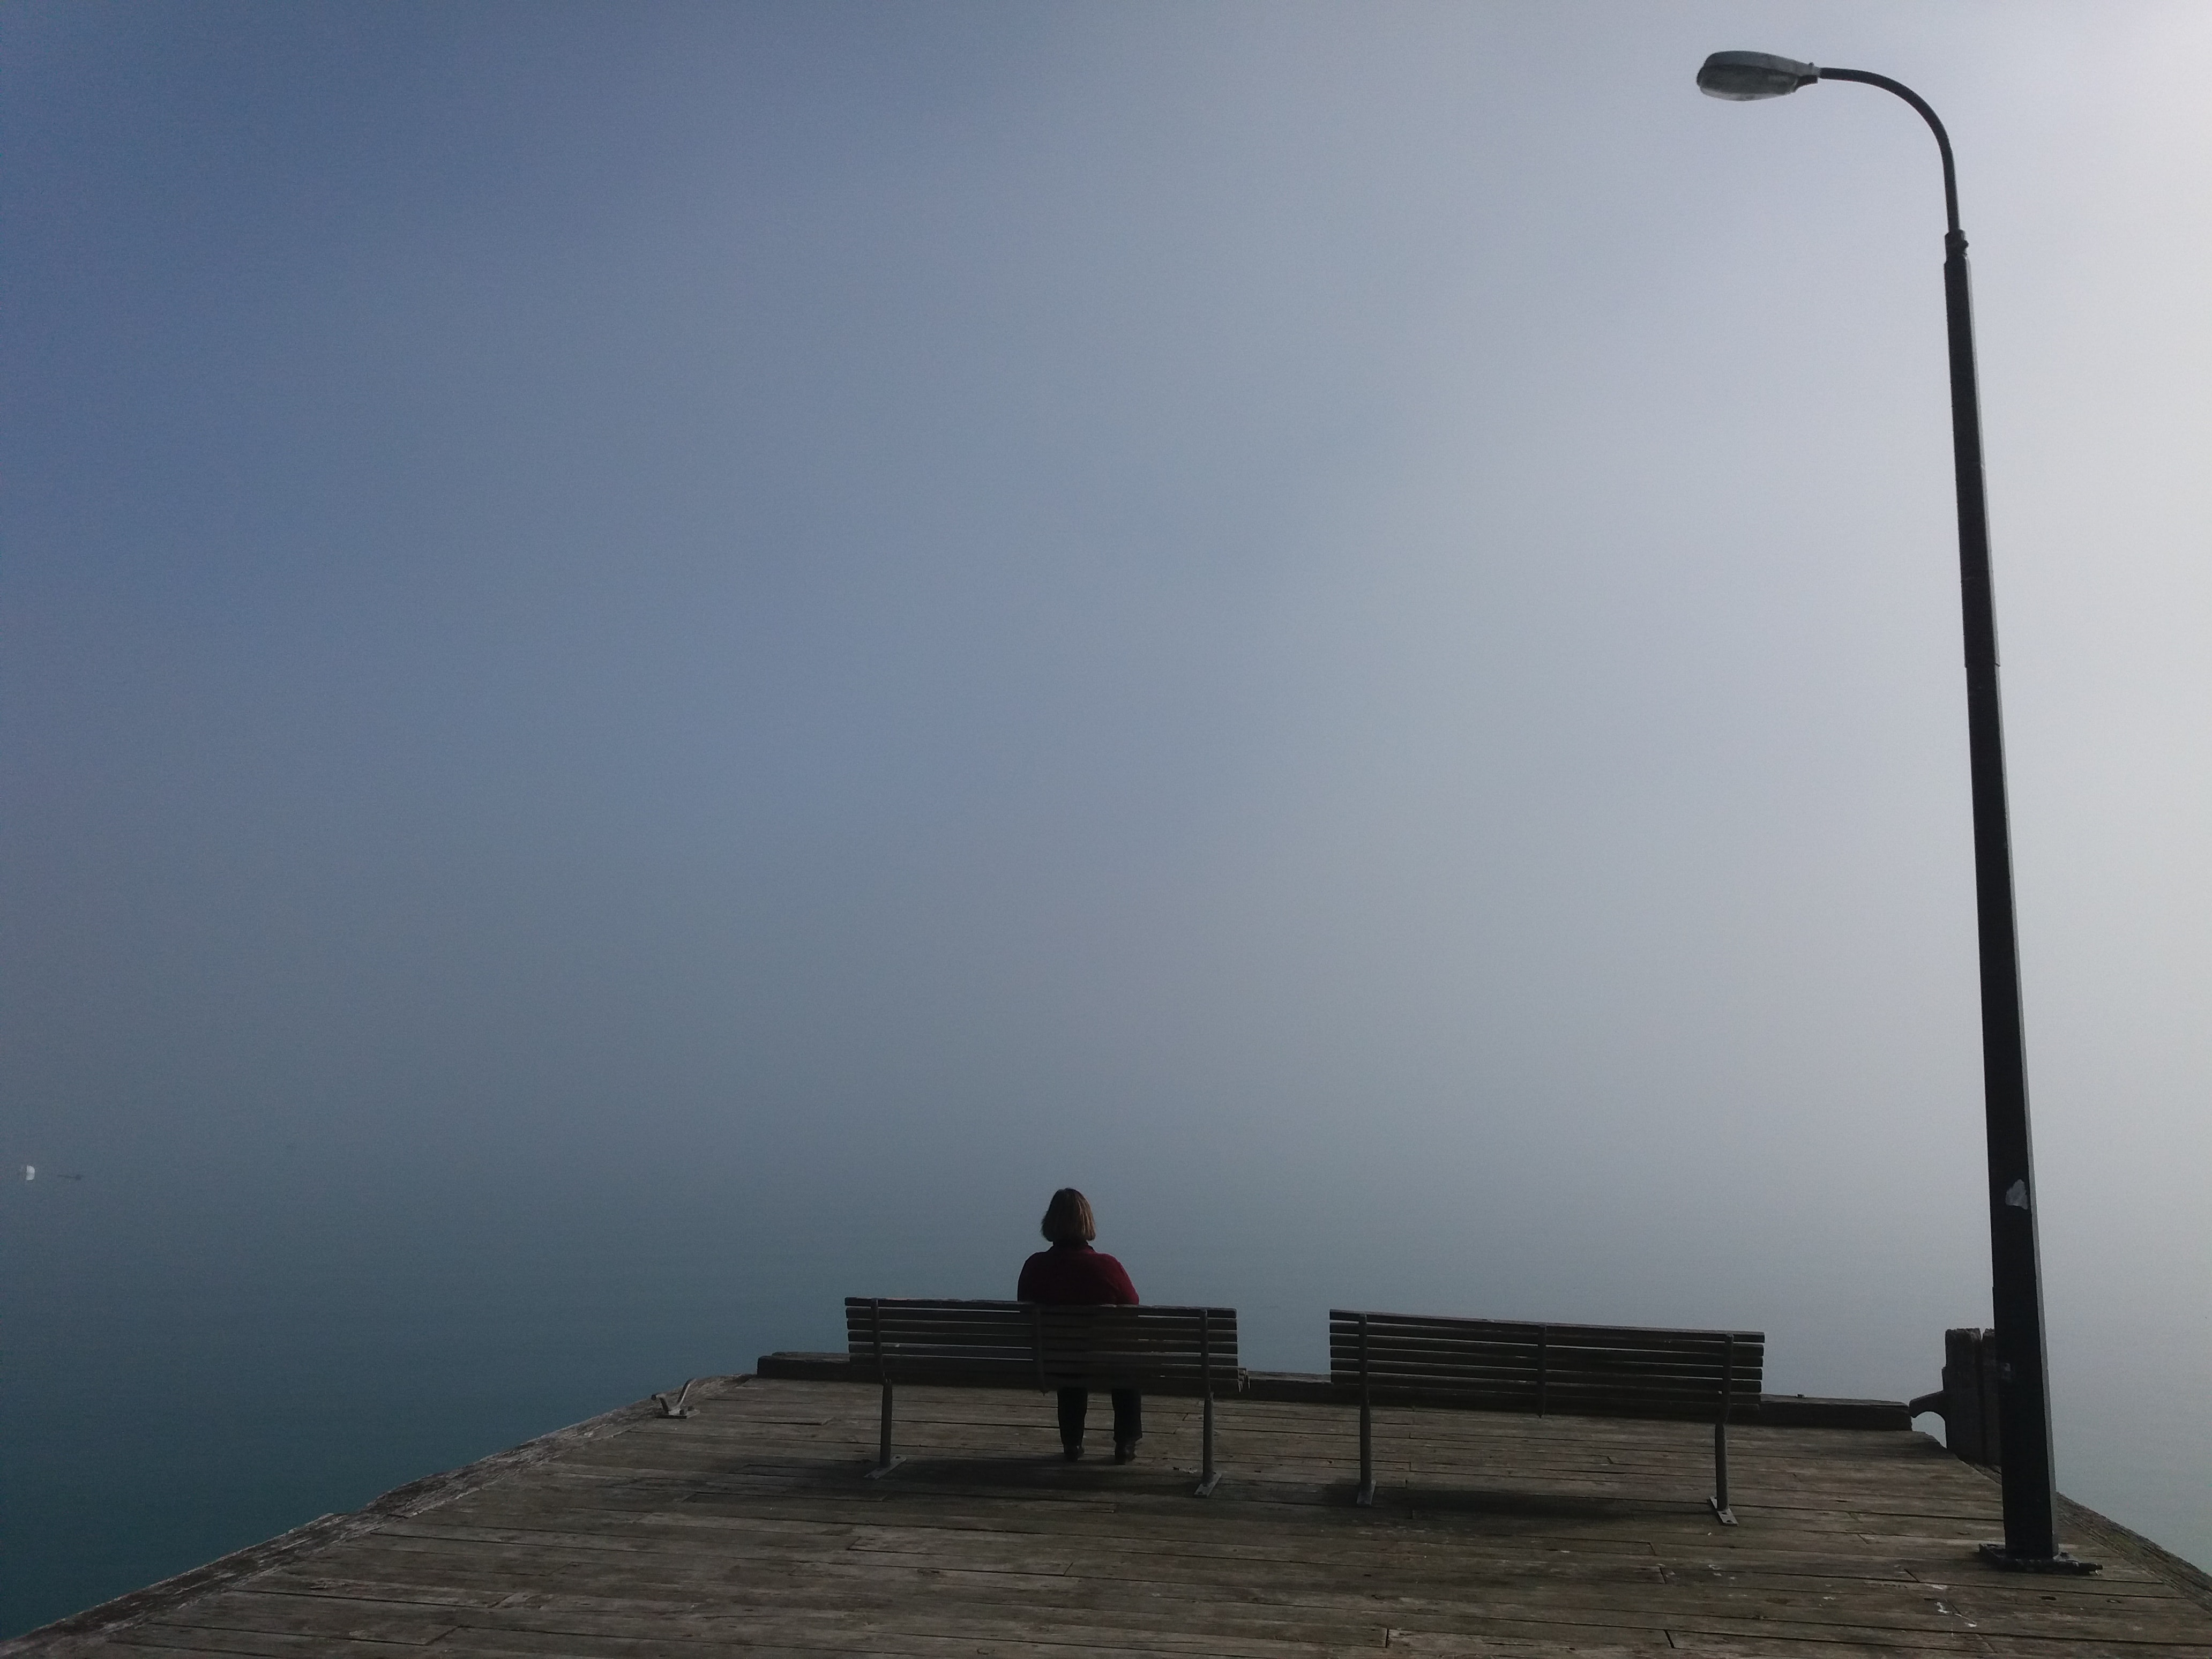 A large street light above a person sitting on one of two park benches.